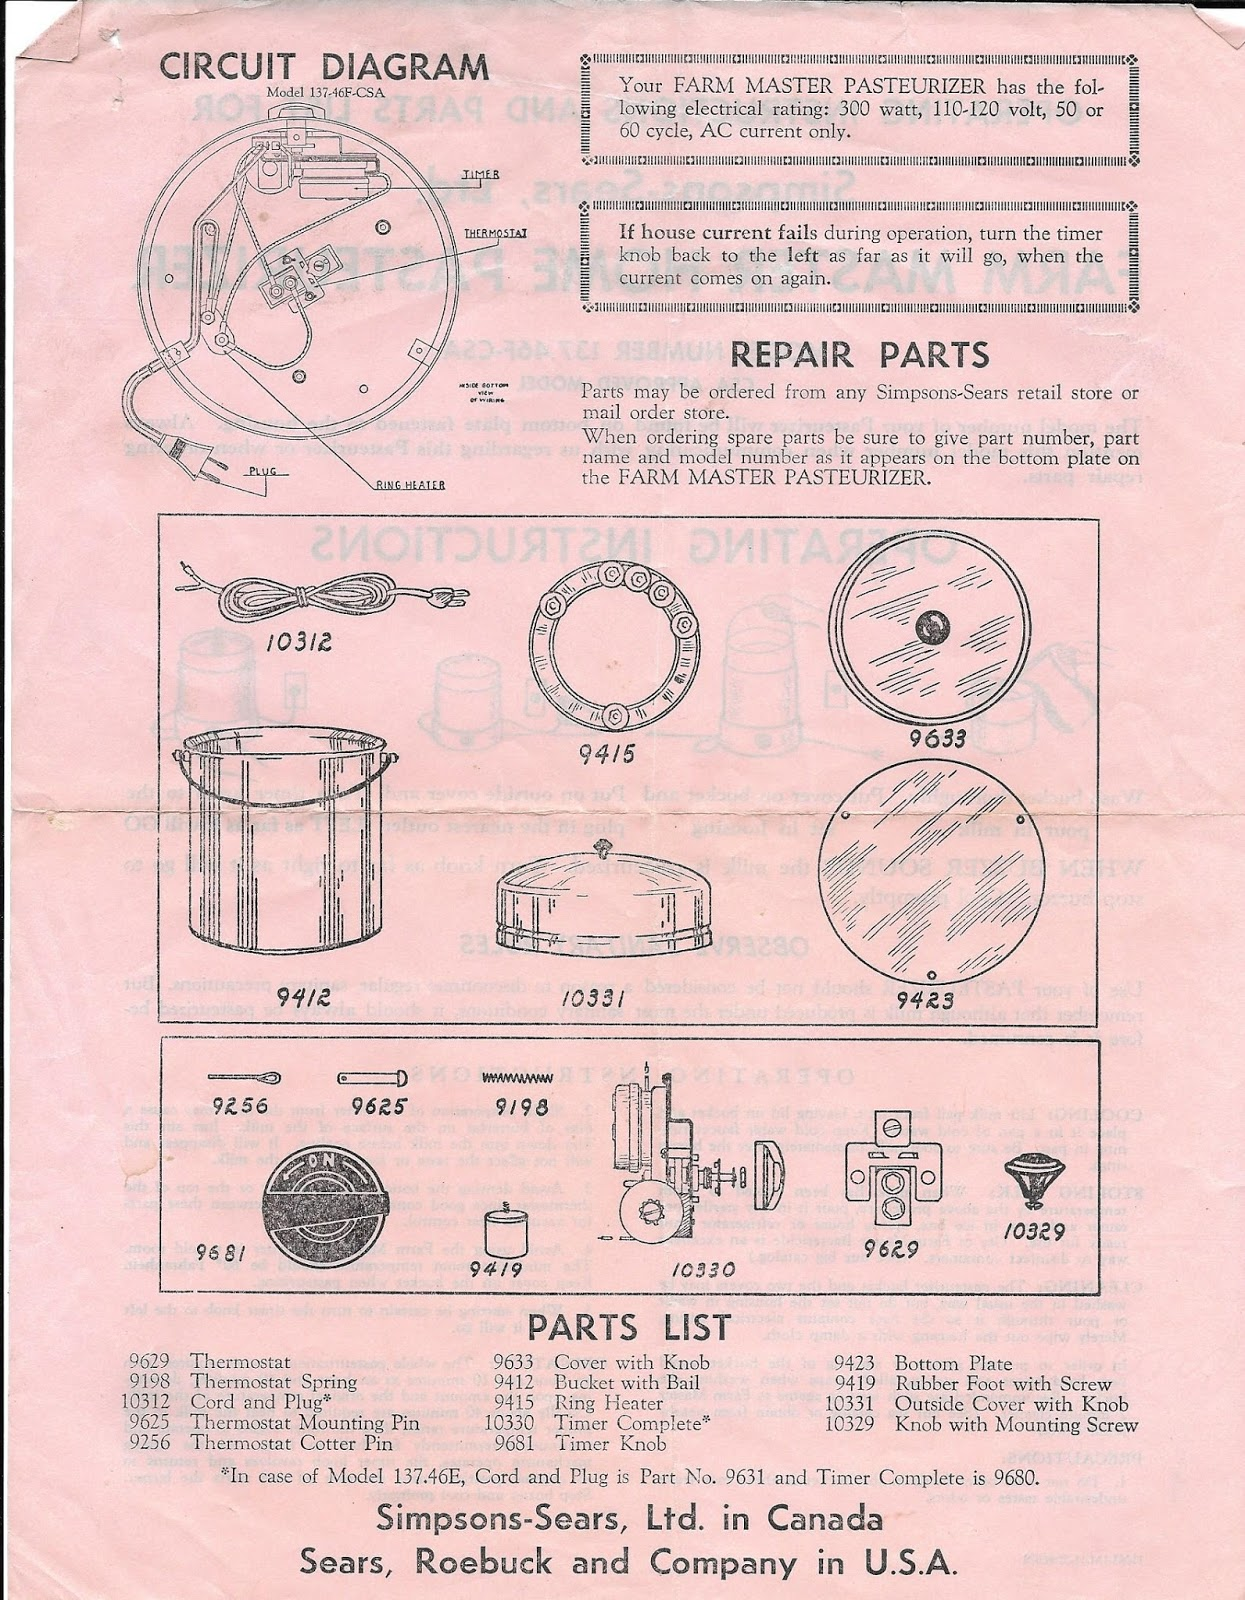 The Boulton Blog February 2017 Filter Queen Vacuum Wiring Diagram Simpson Sears Home Pasteurizer Operating Instruction Sheet Likely Dates From 50s And Picture Of One Below That Was Found On Etsy Is